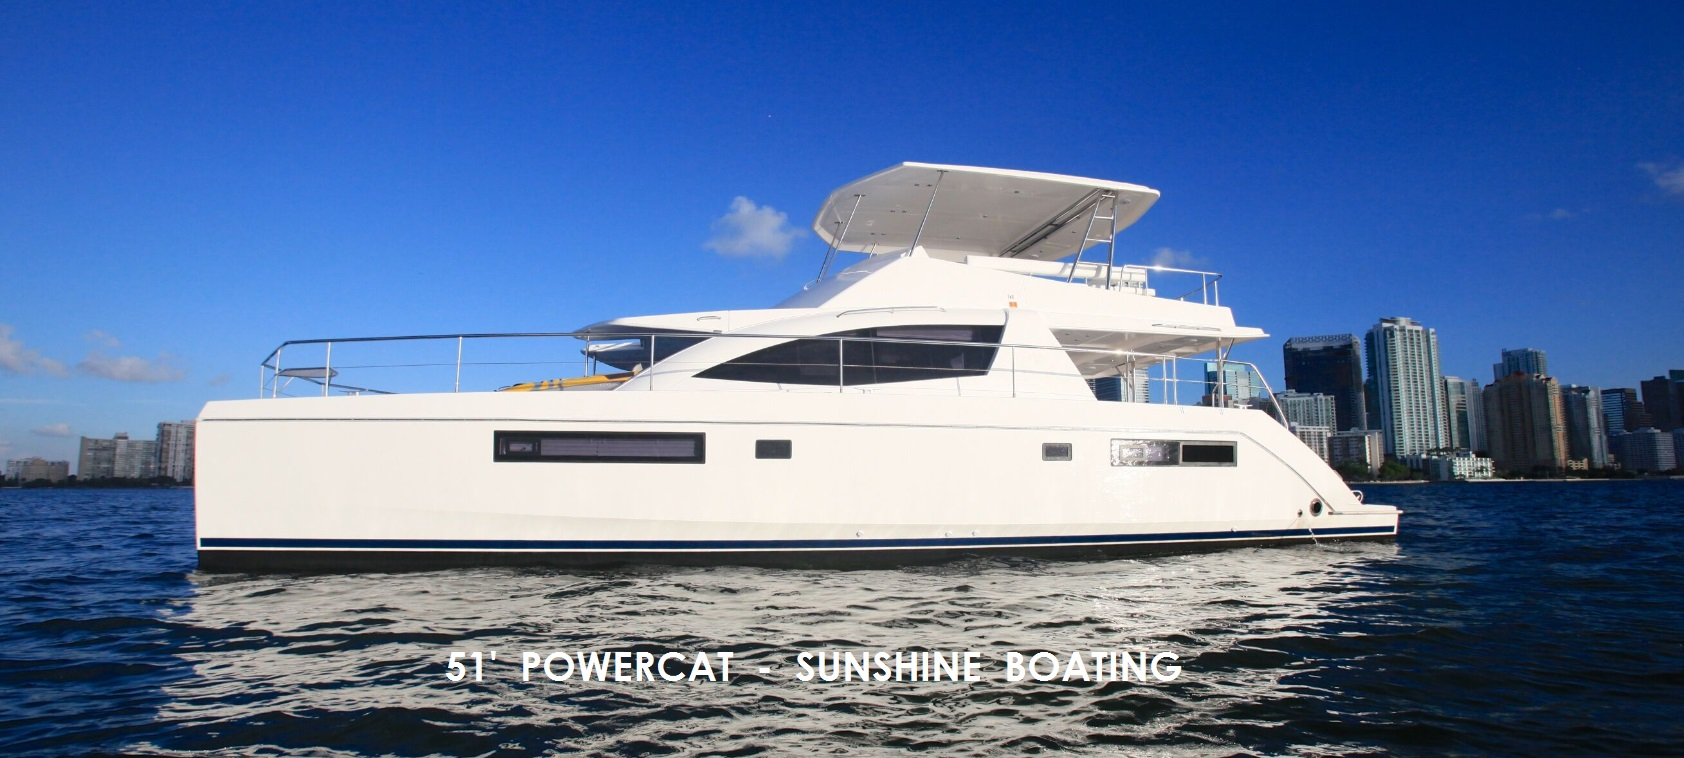 sunshine-boating-powercat-51-c